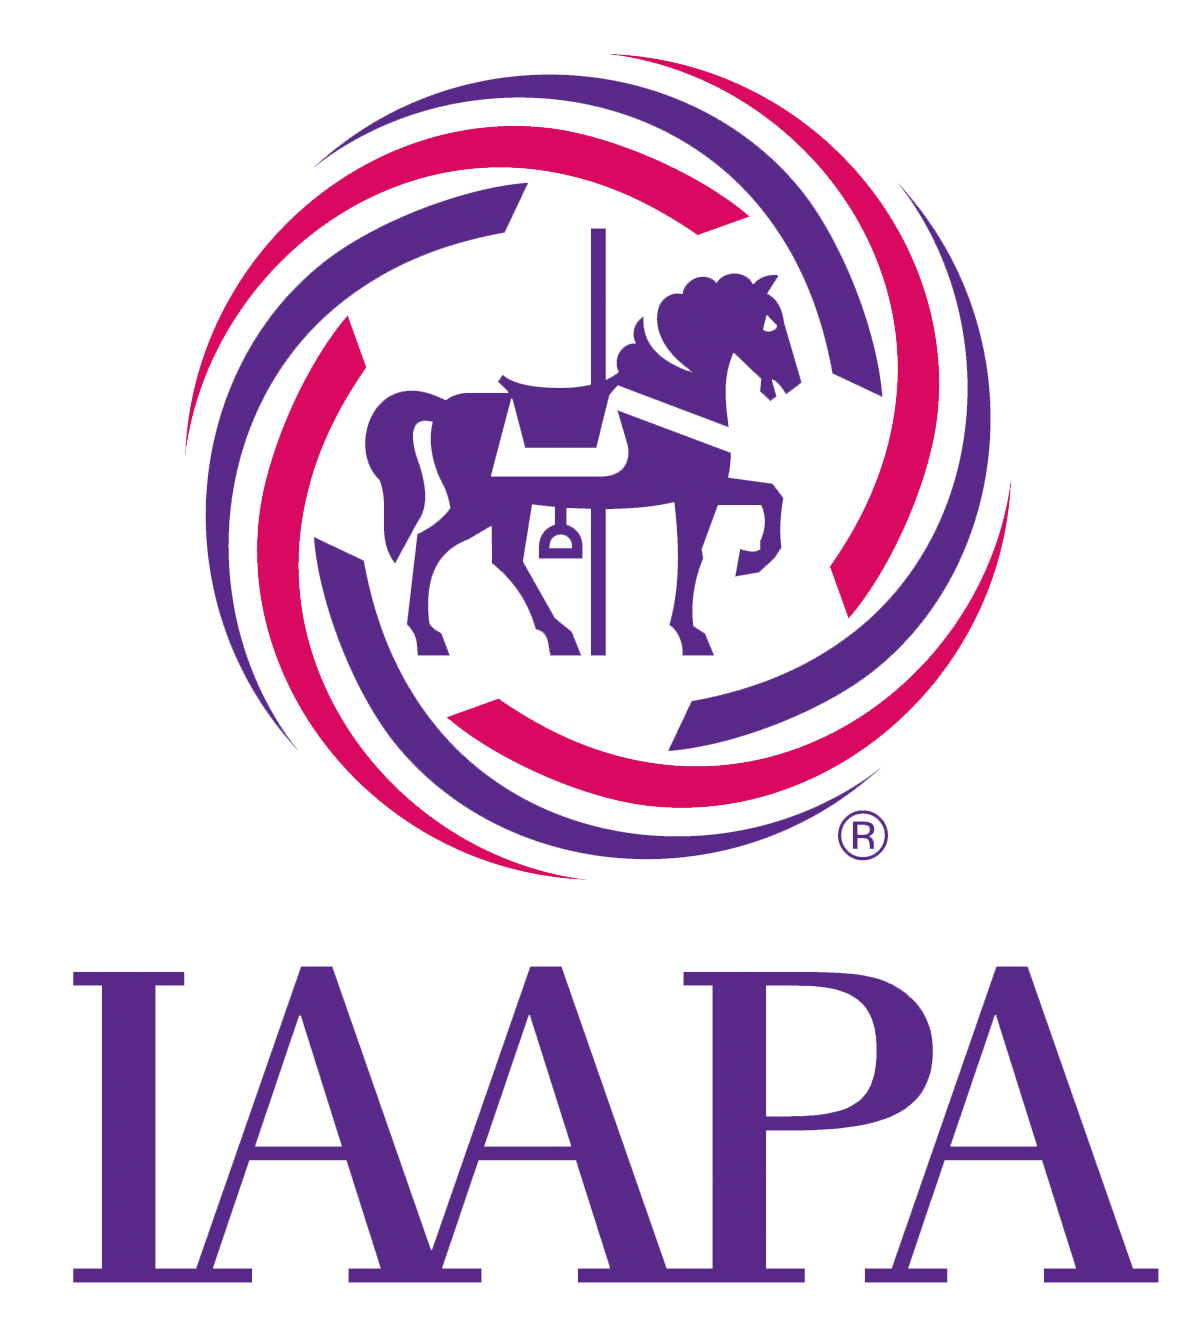 IAAPA 2014 participants raise money for kids